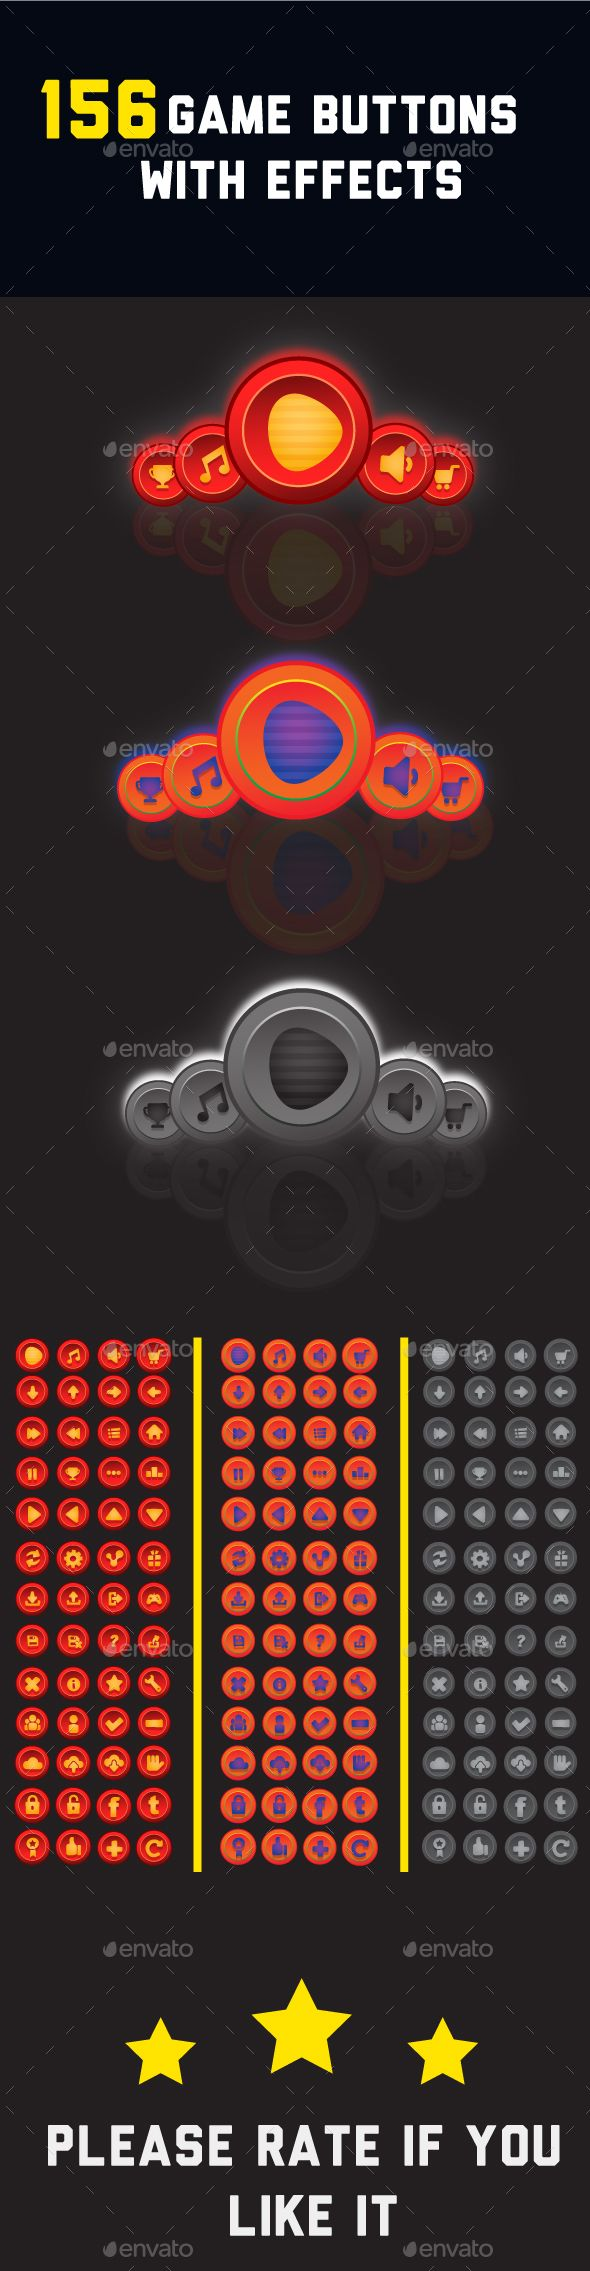 Game Buttons with effects